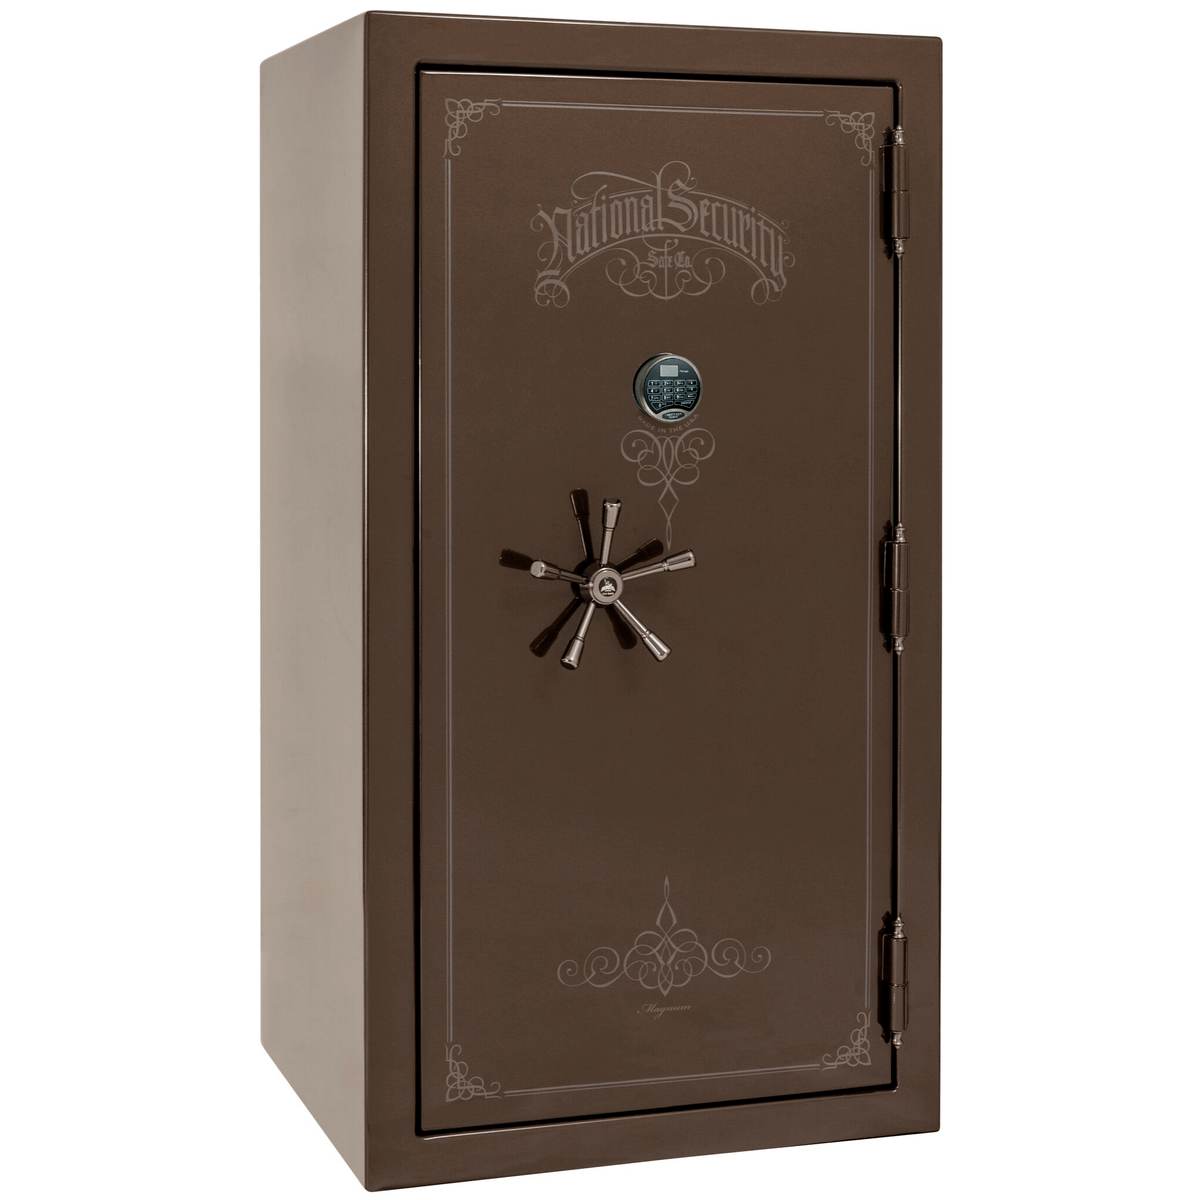 "Magnum | 40 | Level 8 Security | 150 Minute Fire Protection | Bronze Gloss | Black Electronic Lock | 65.5""(H) x 36""(W) x 32""(D)"